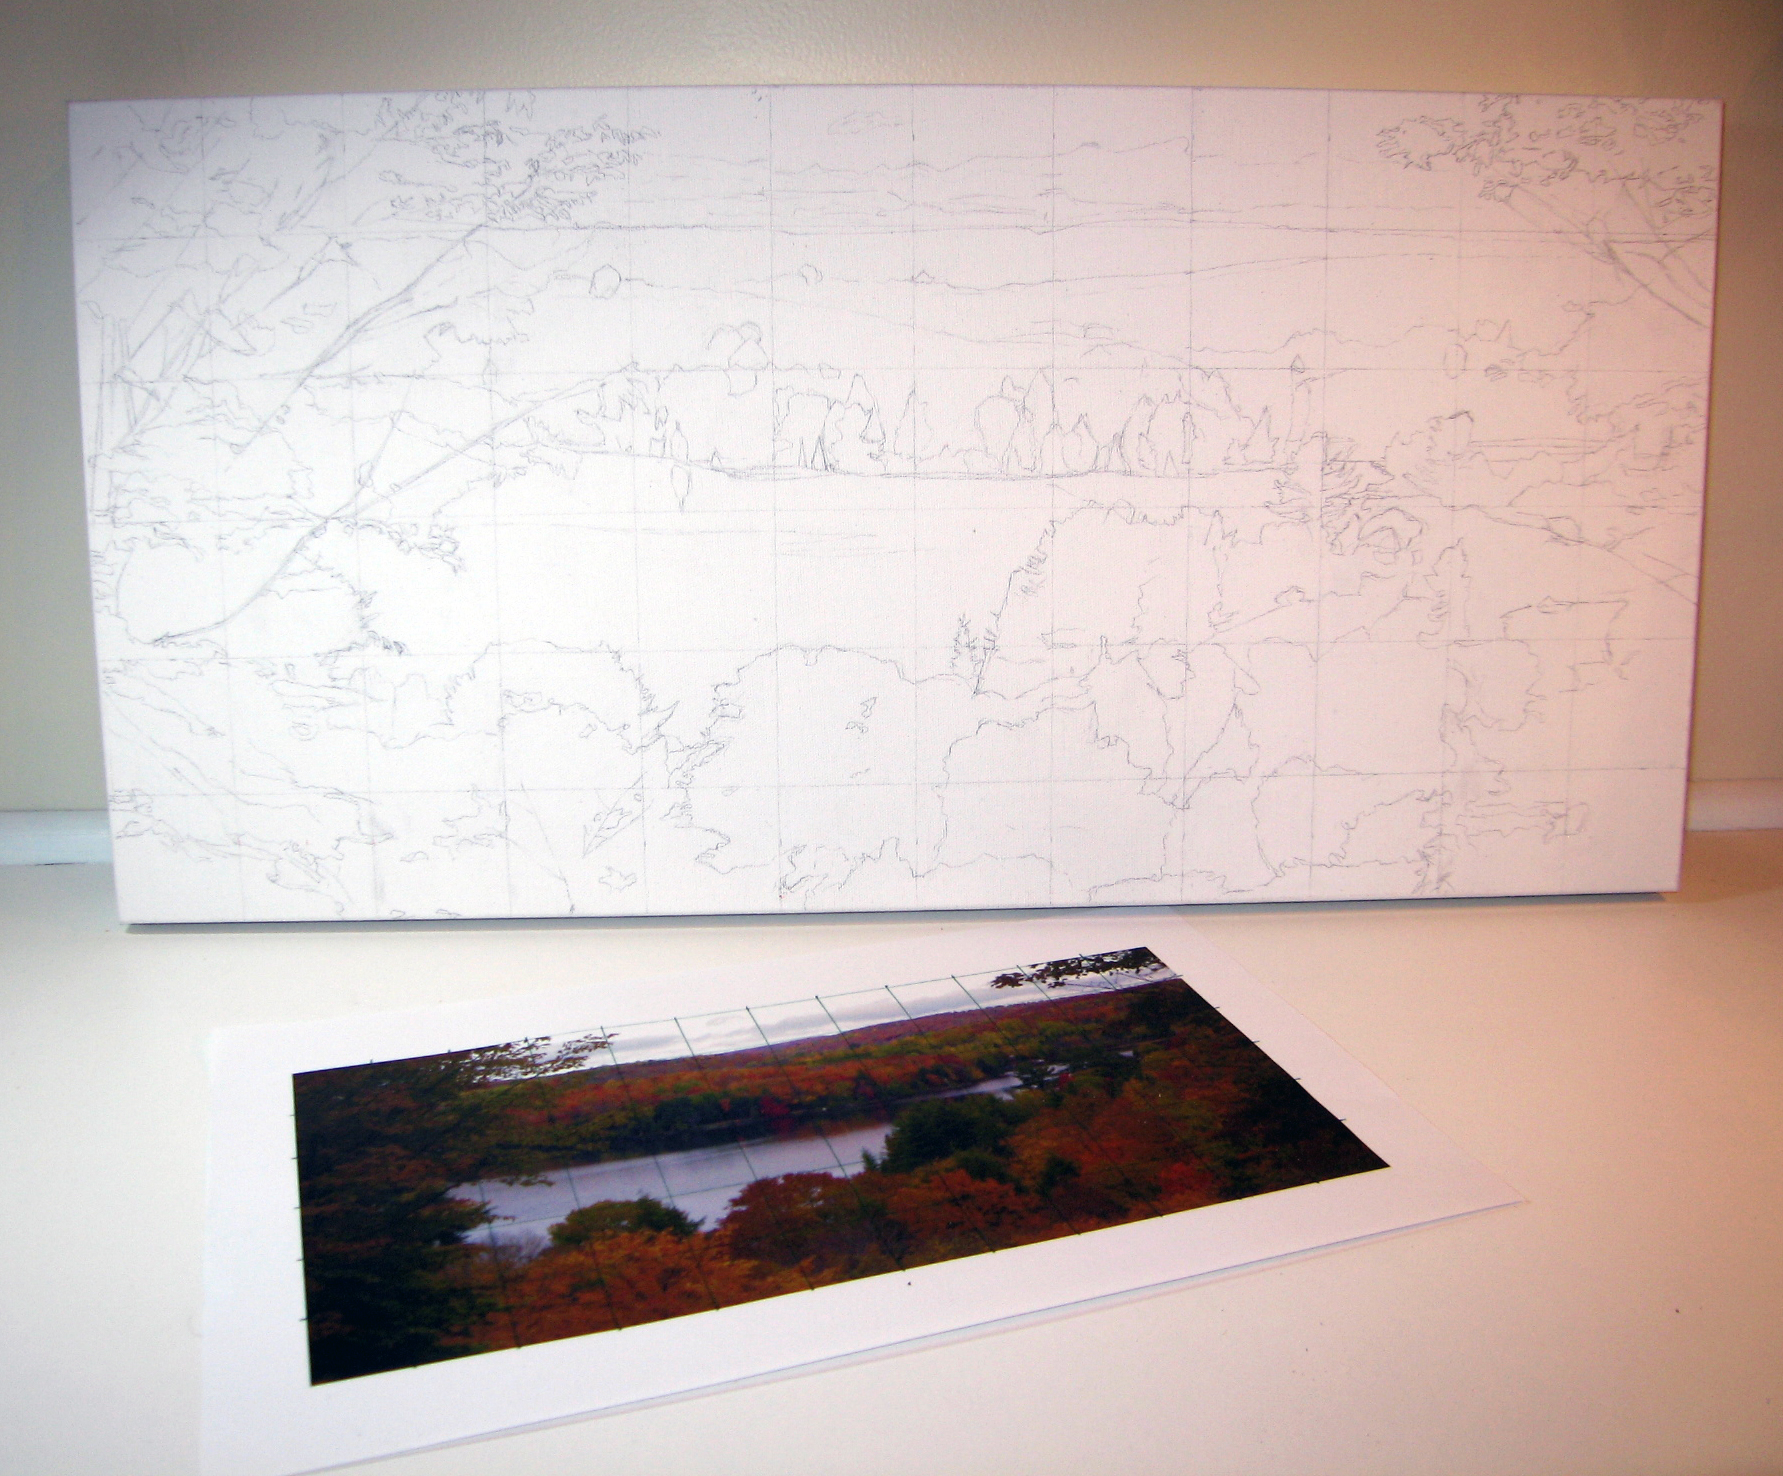 Drawing - commissioned landscape